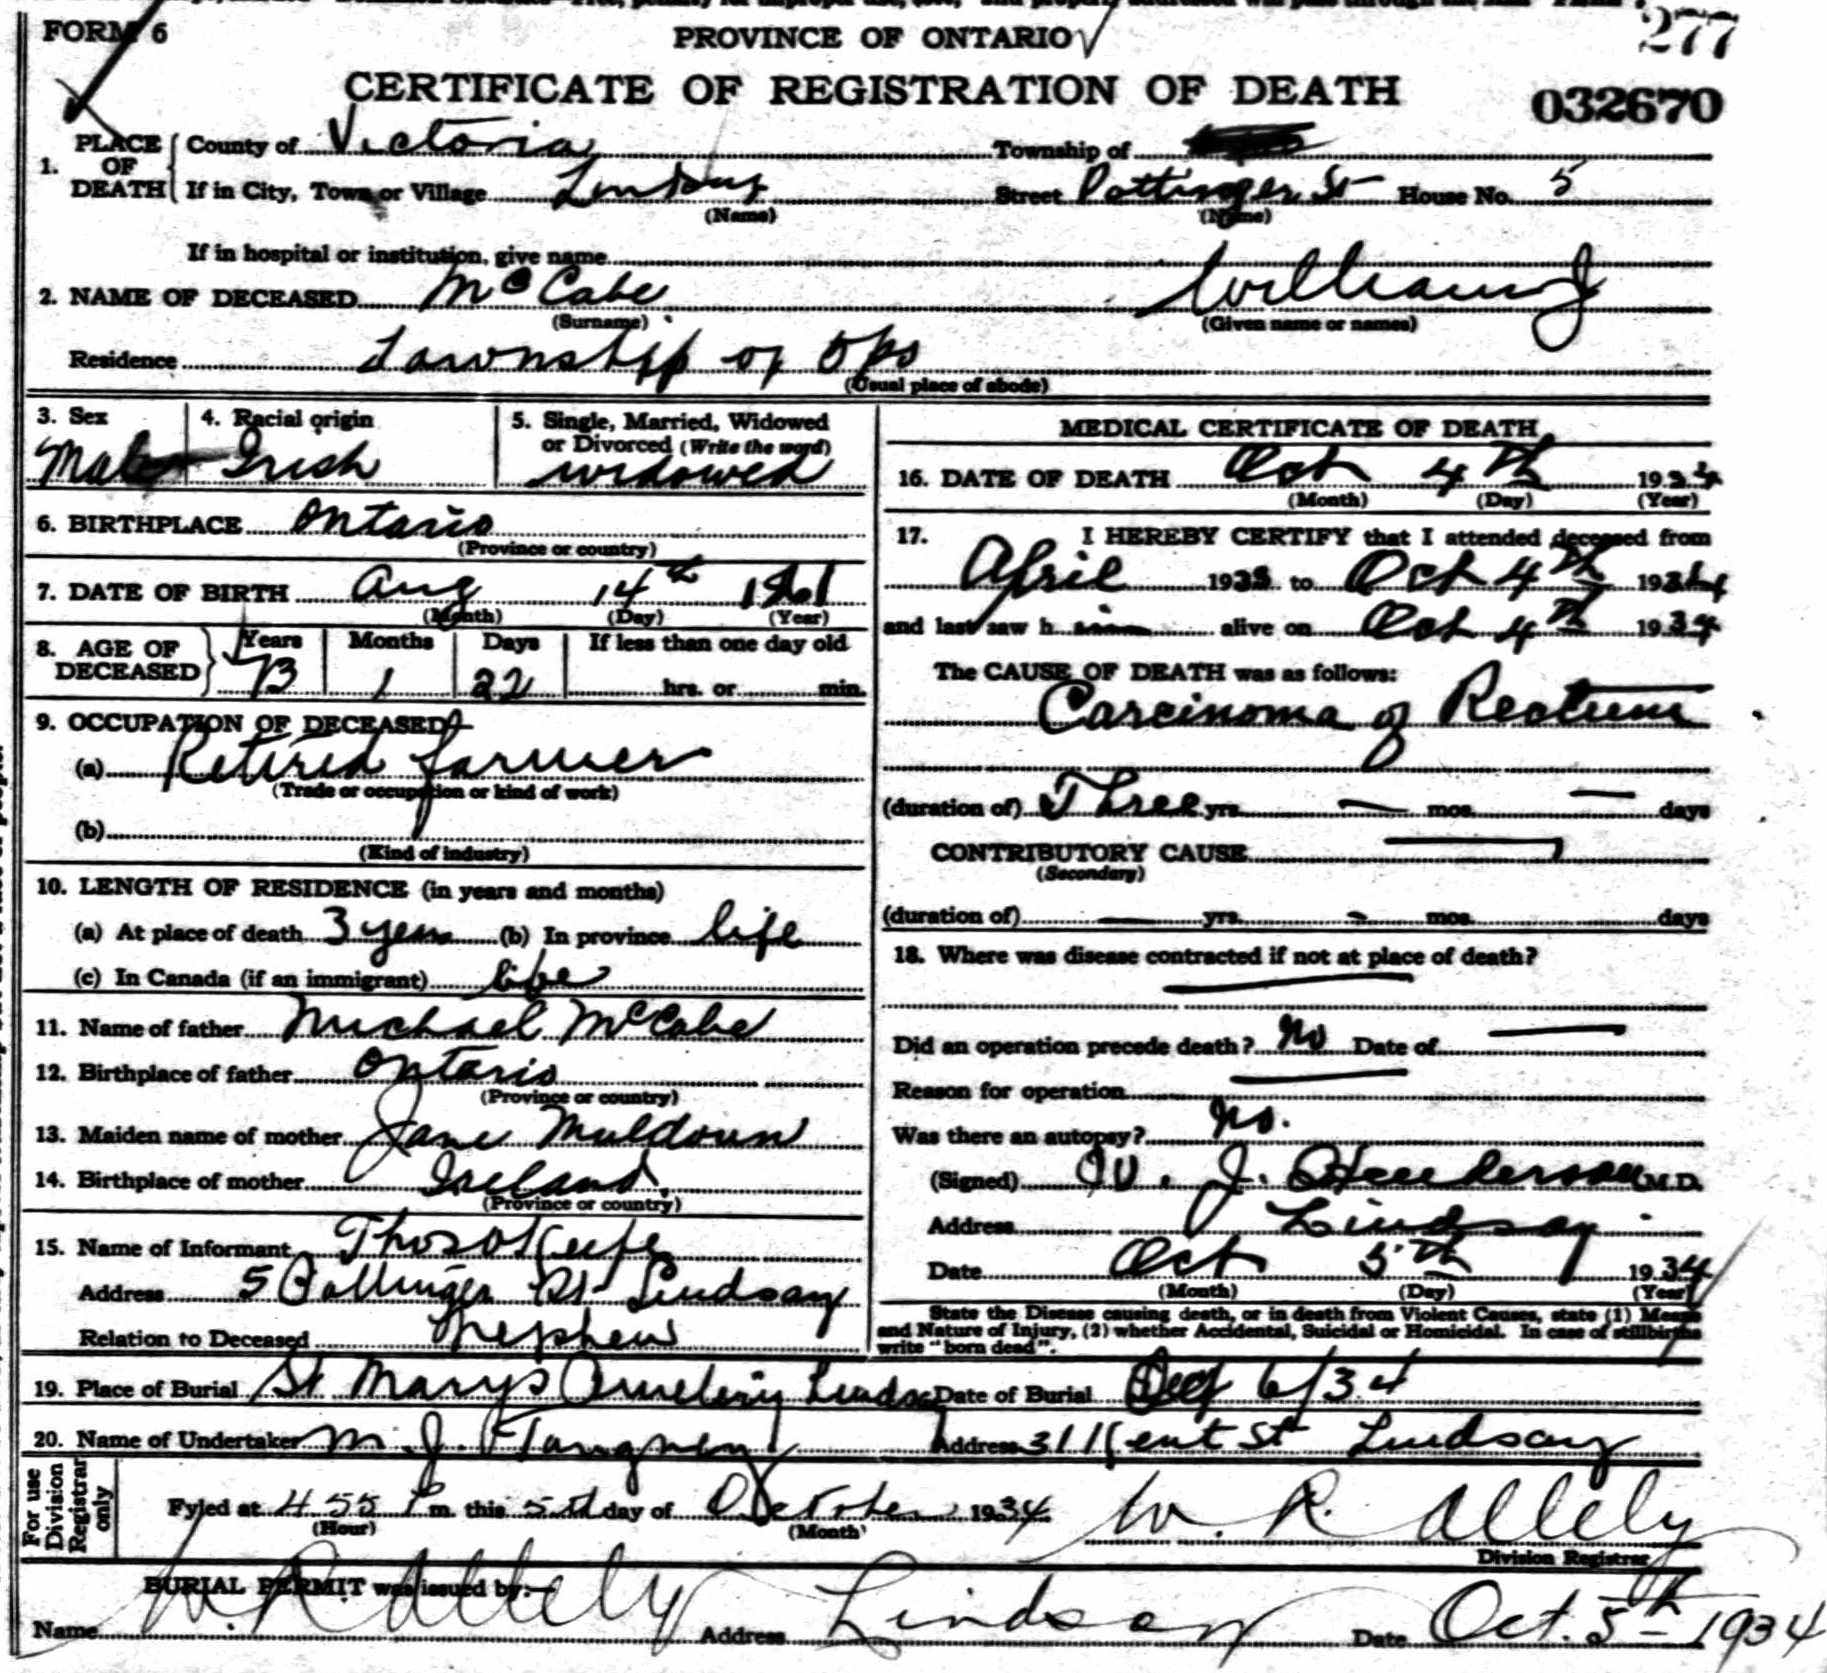 William John McCabe Death Certificate